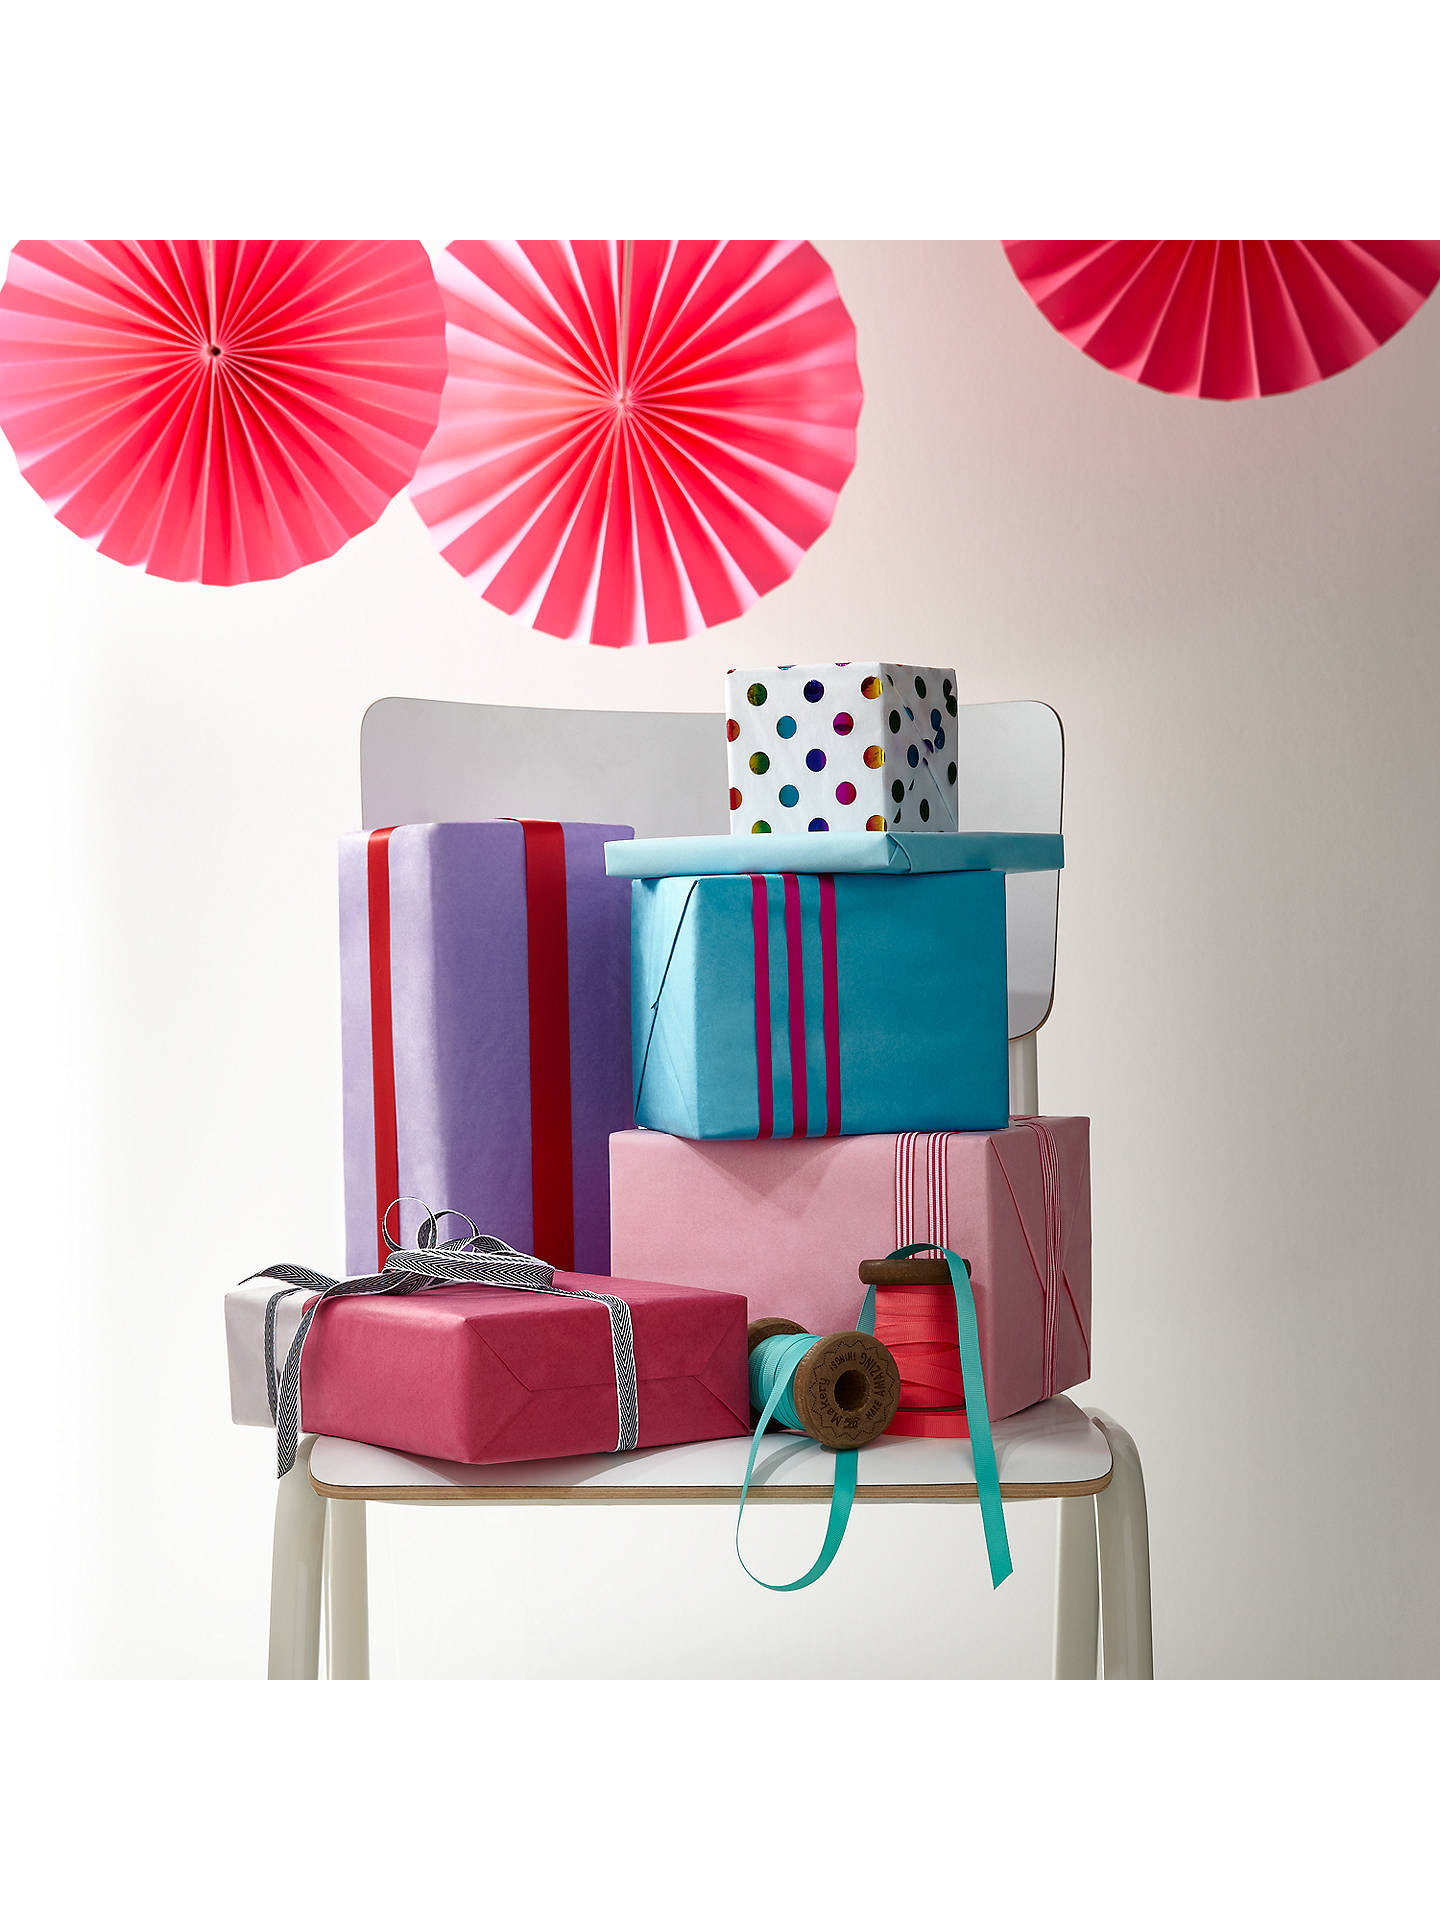 Buy John Lewis Tribbon Gift Ribbon, Pack of 3, Peppermint Online at johnlewis.com